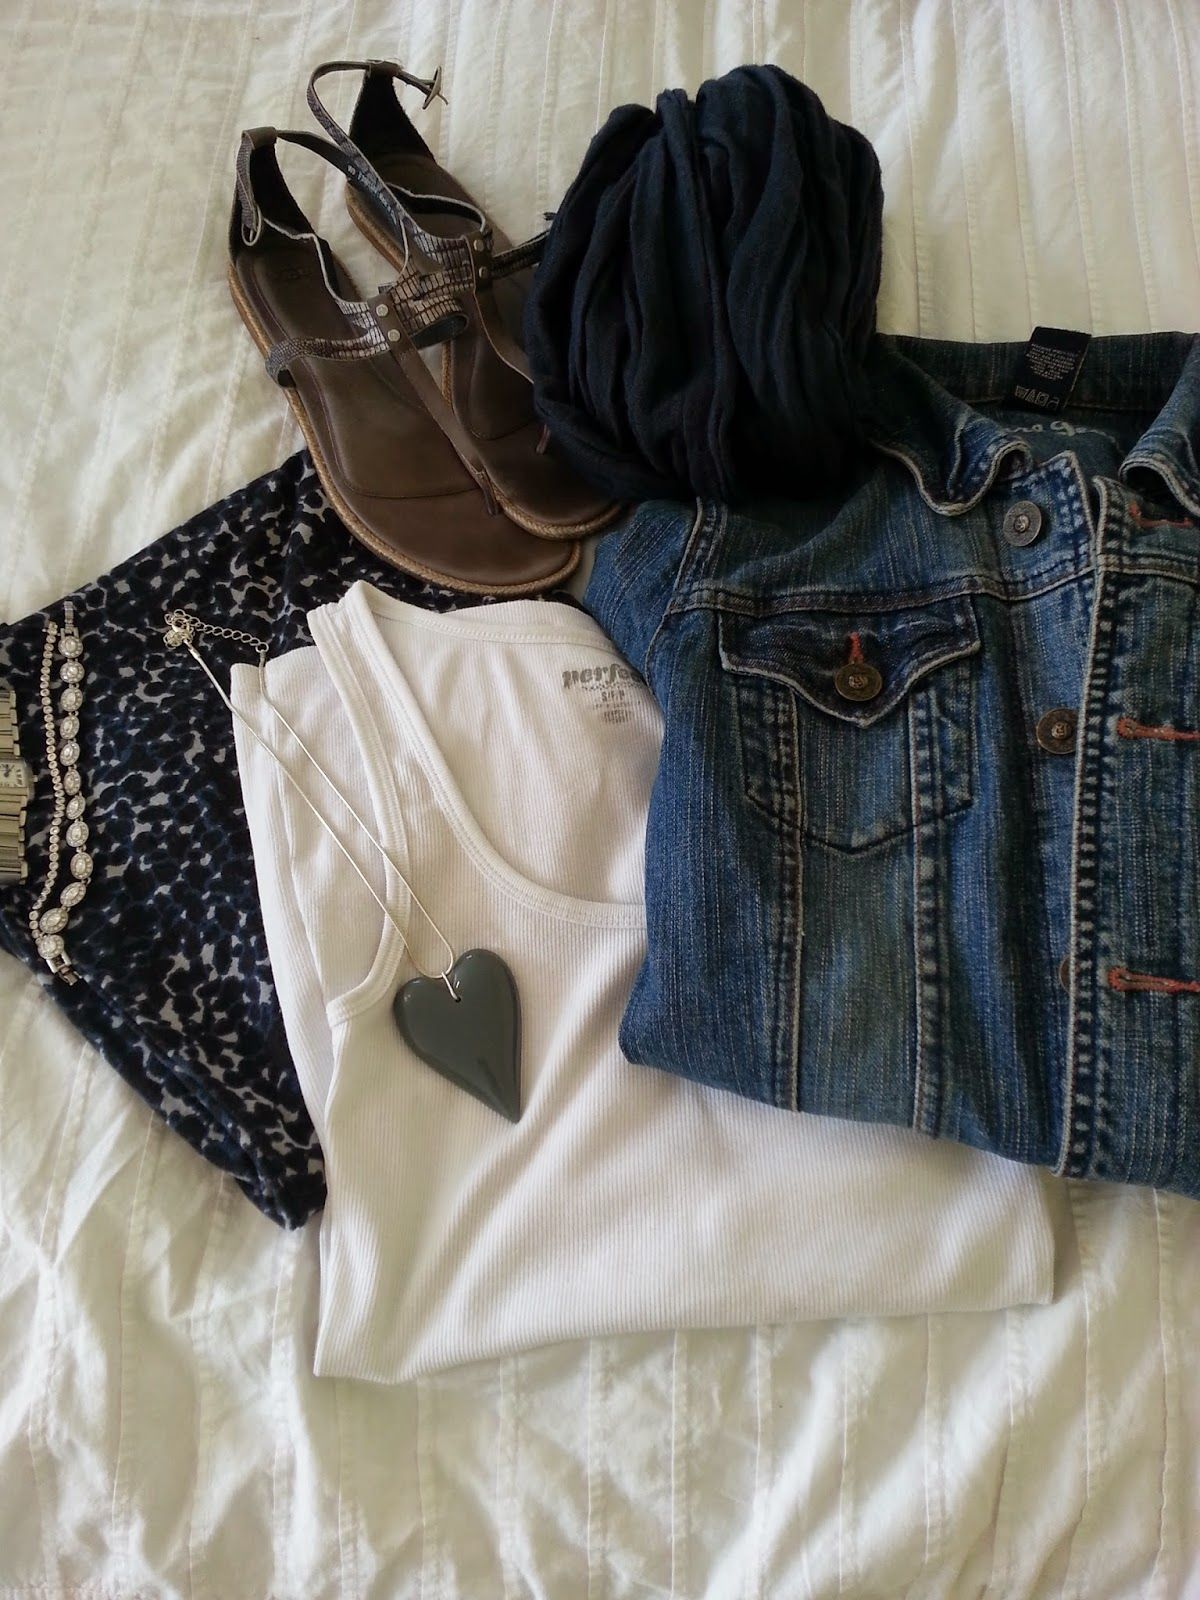 How to Pack for a Holiday Abroad - ClickHowTo